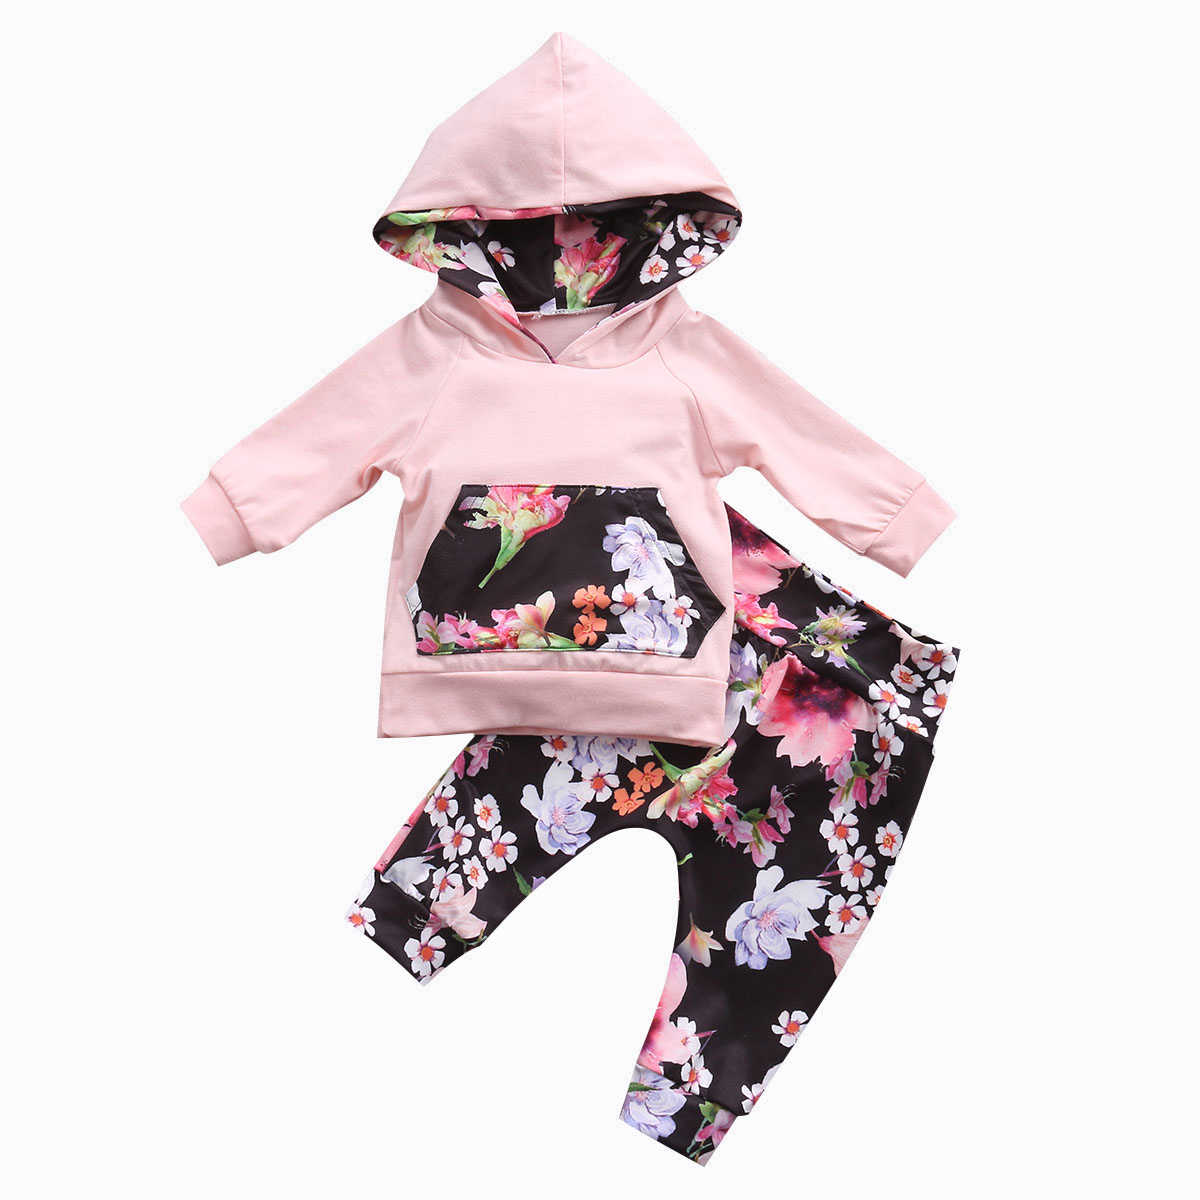 b855583c372ee Detail Feedback Questions about 3pcs Baby Clothing Sweet Newborn ...